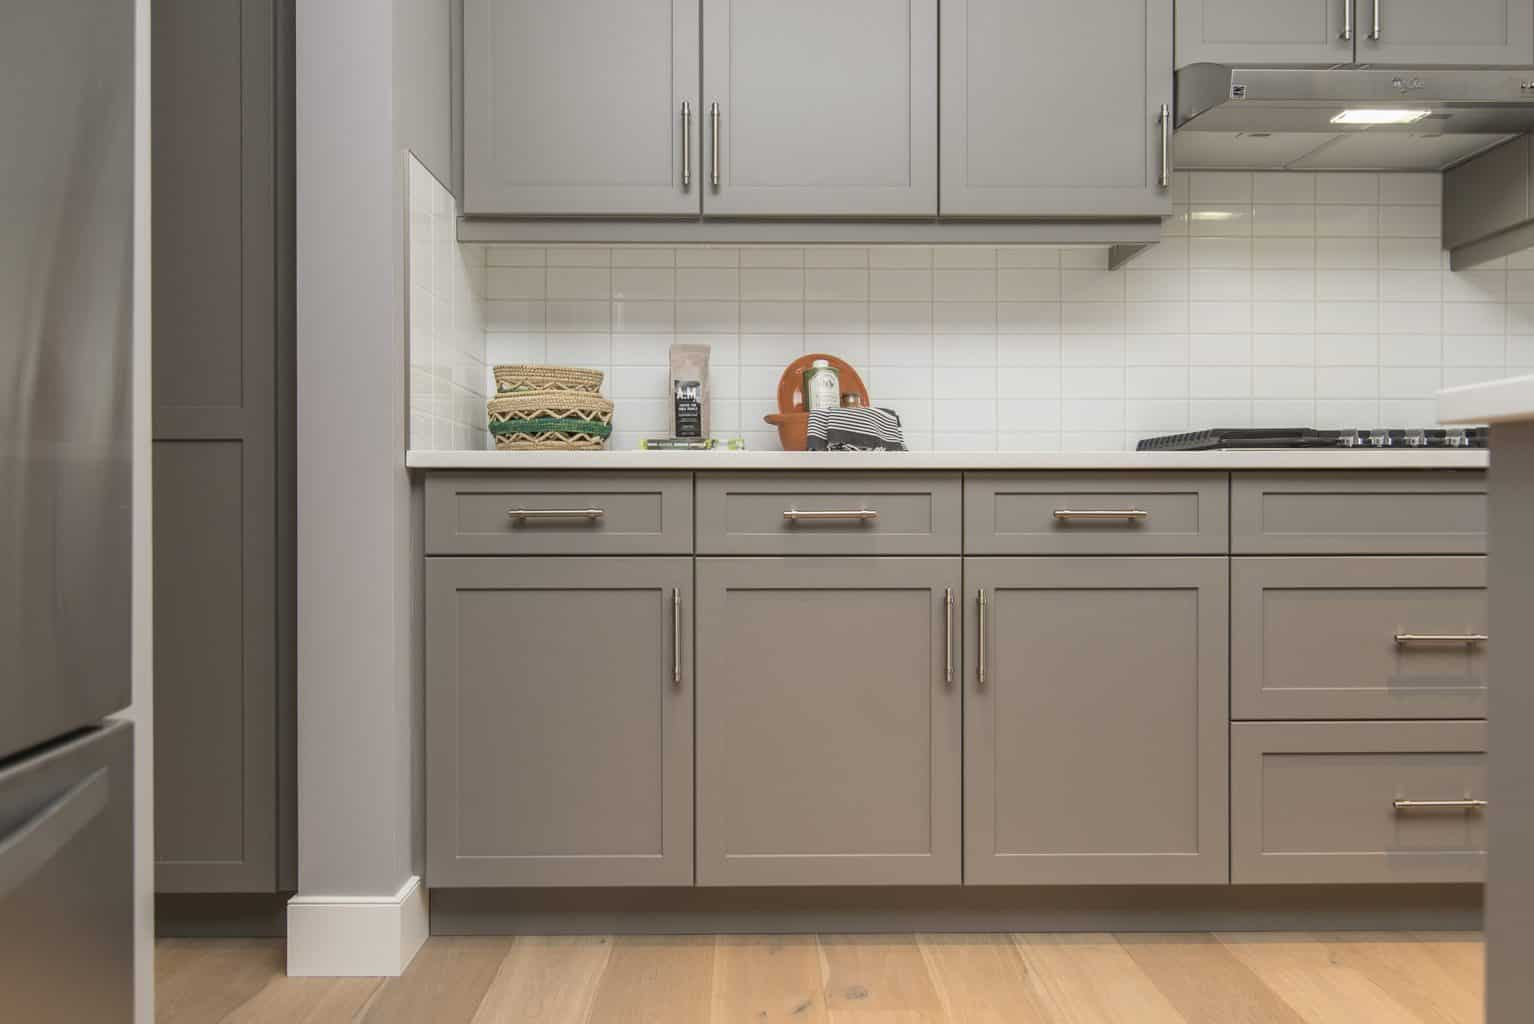 Kitchen Cabinet Designs That Make a Difference